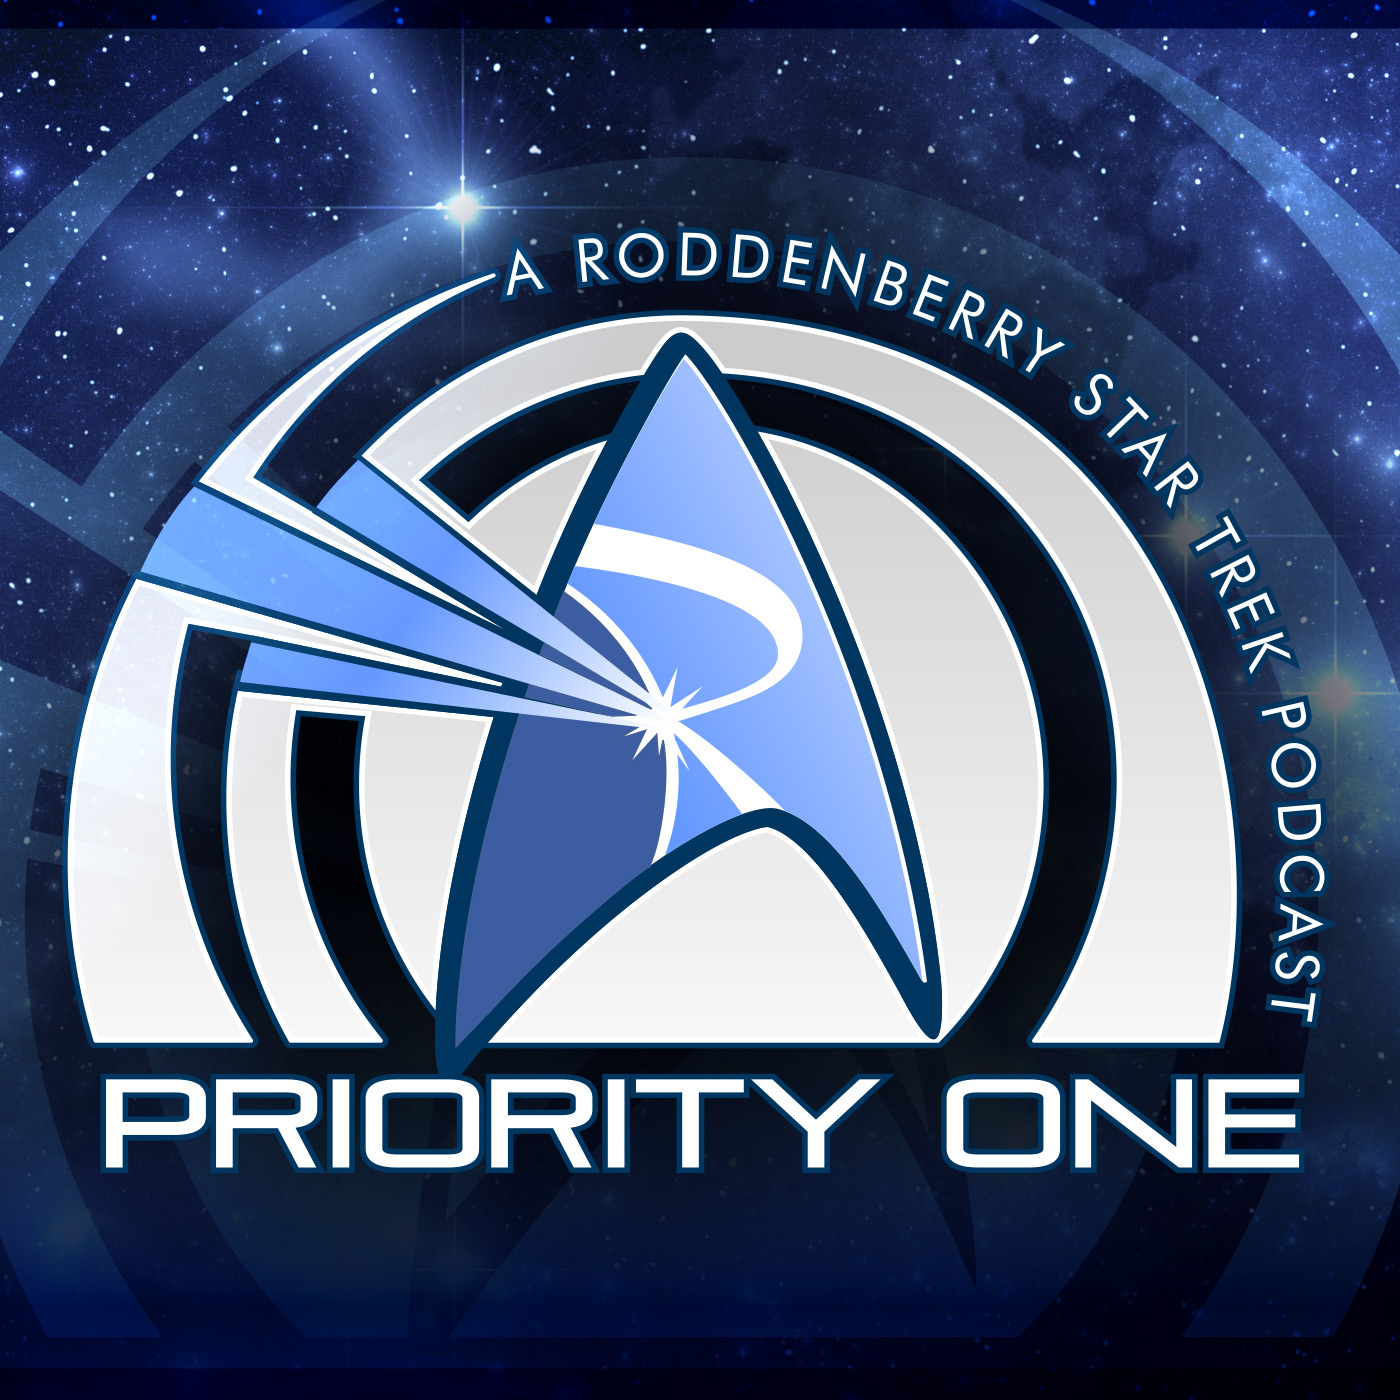 Artwork for 389 - Seeing Binary Stars | Priority One: A Roddenberry Star Trek Podcast